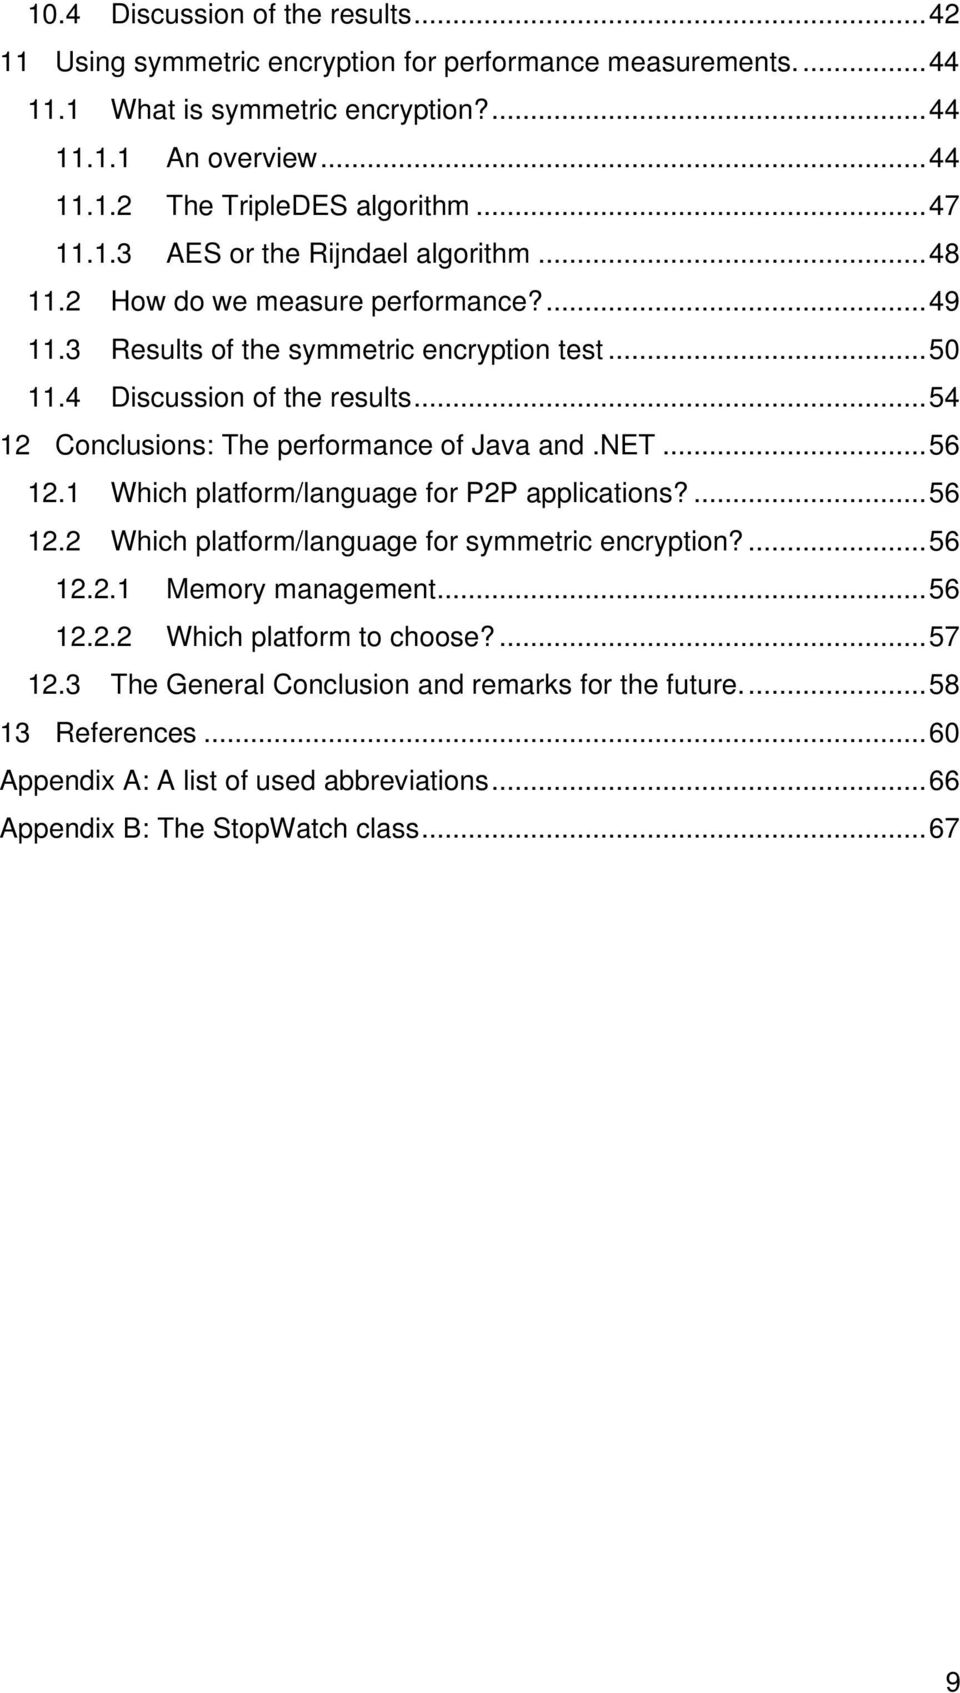 ..54 12 Conclusions: The performance of Java and.net...56 12.1 Which platform/language for P2P applications?...56 12.2 Which platform/language for symmetric encryption?...56 12.2.1 Memory management.